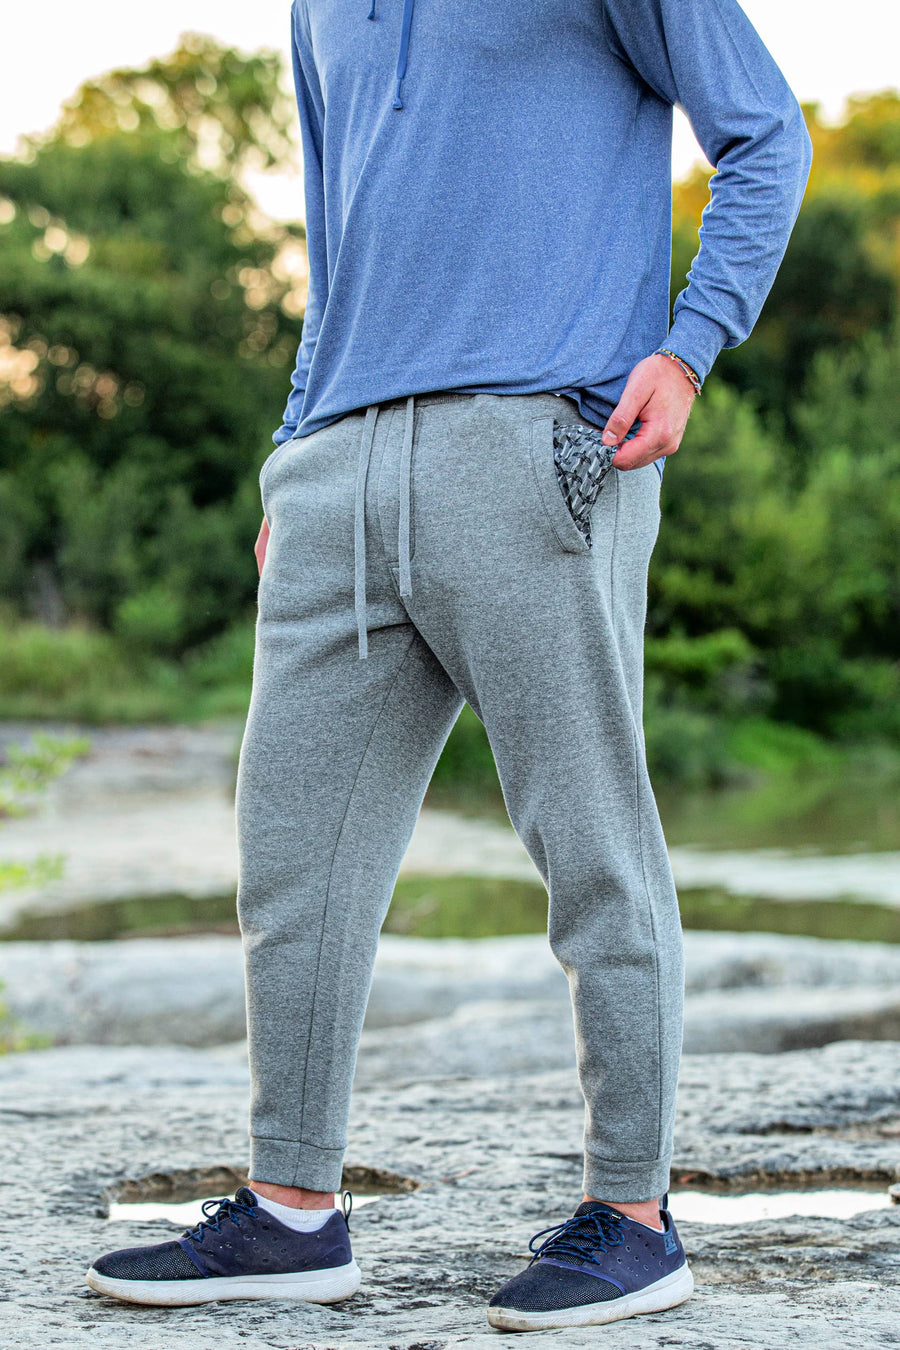 BURLEBO - Dark Gray Fleece Joggers